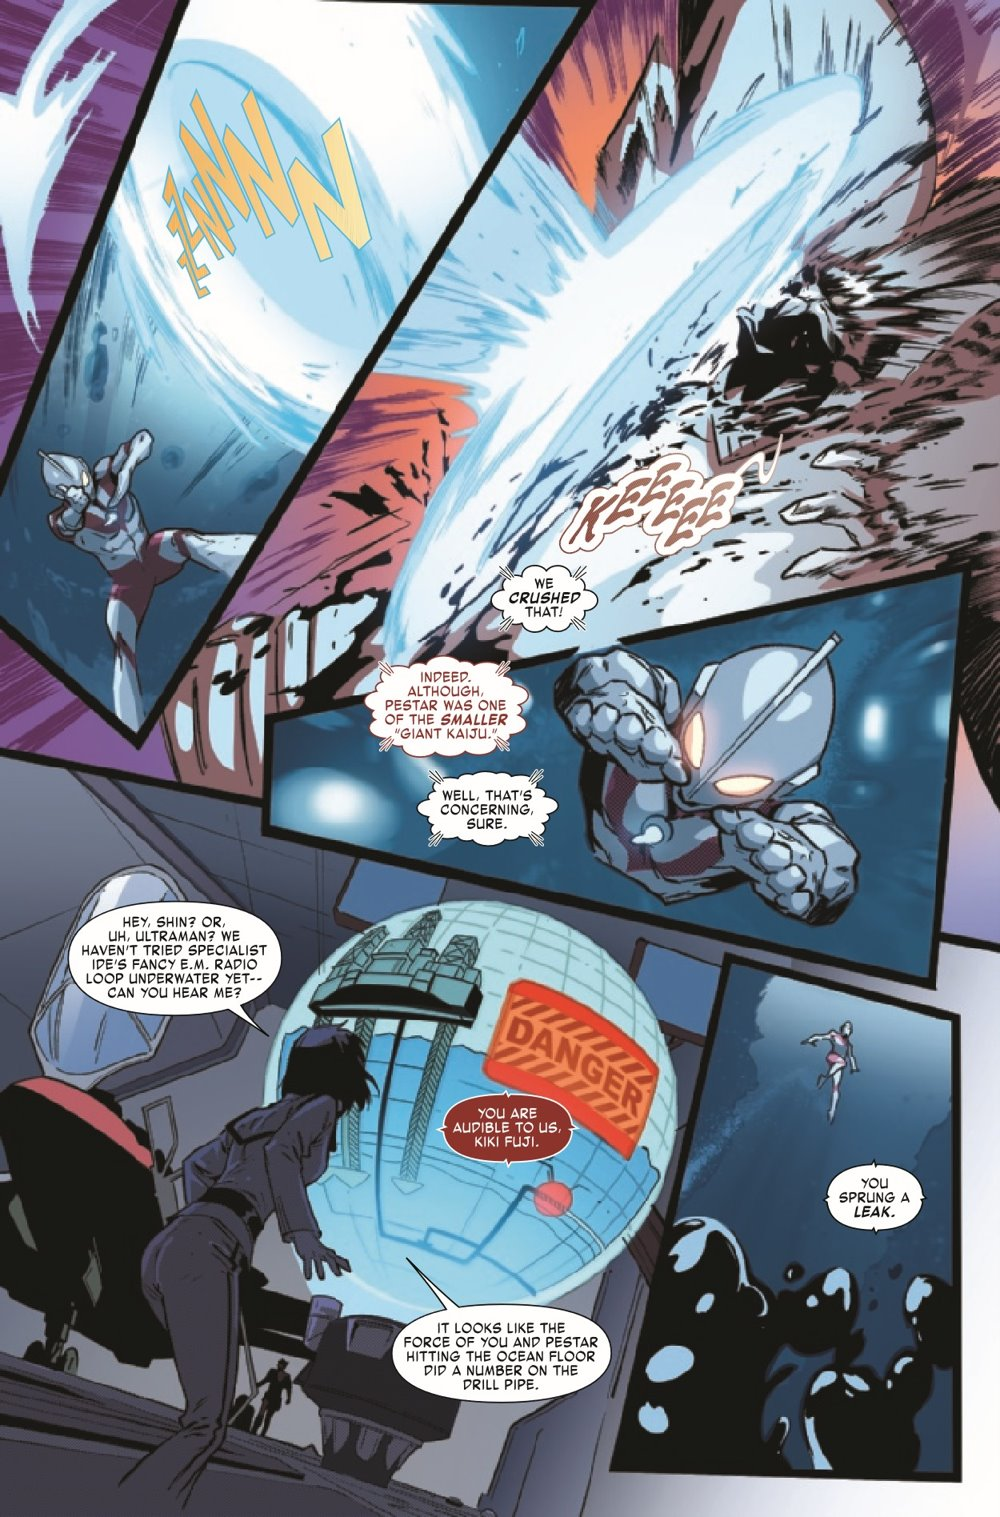 ULTRAMANTRIALS2021001_Preview-5 ComicList Previews: THE TRIALS OF ULTRAMAN #1 (OF 5)